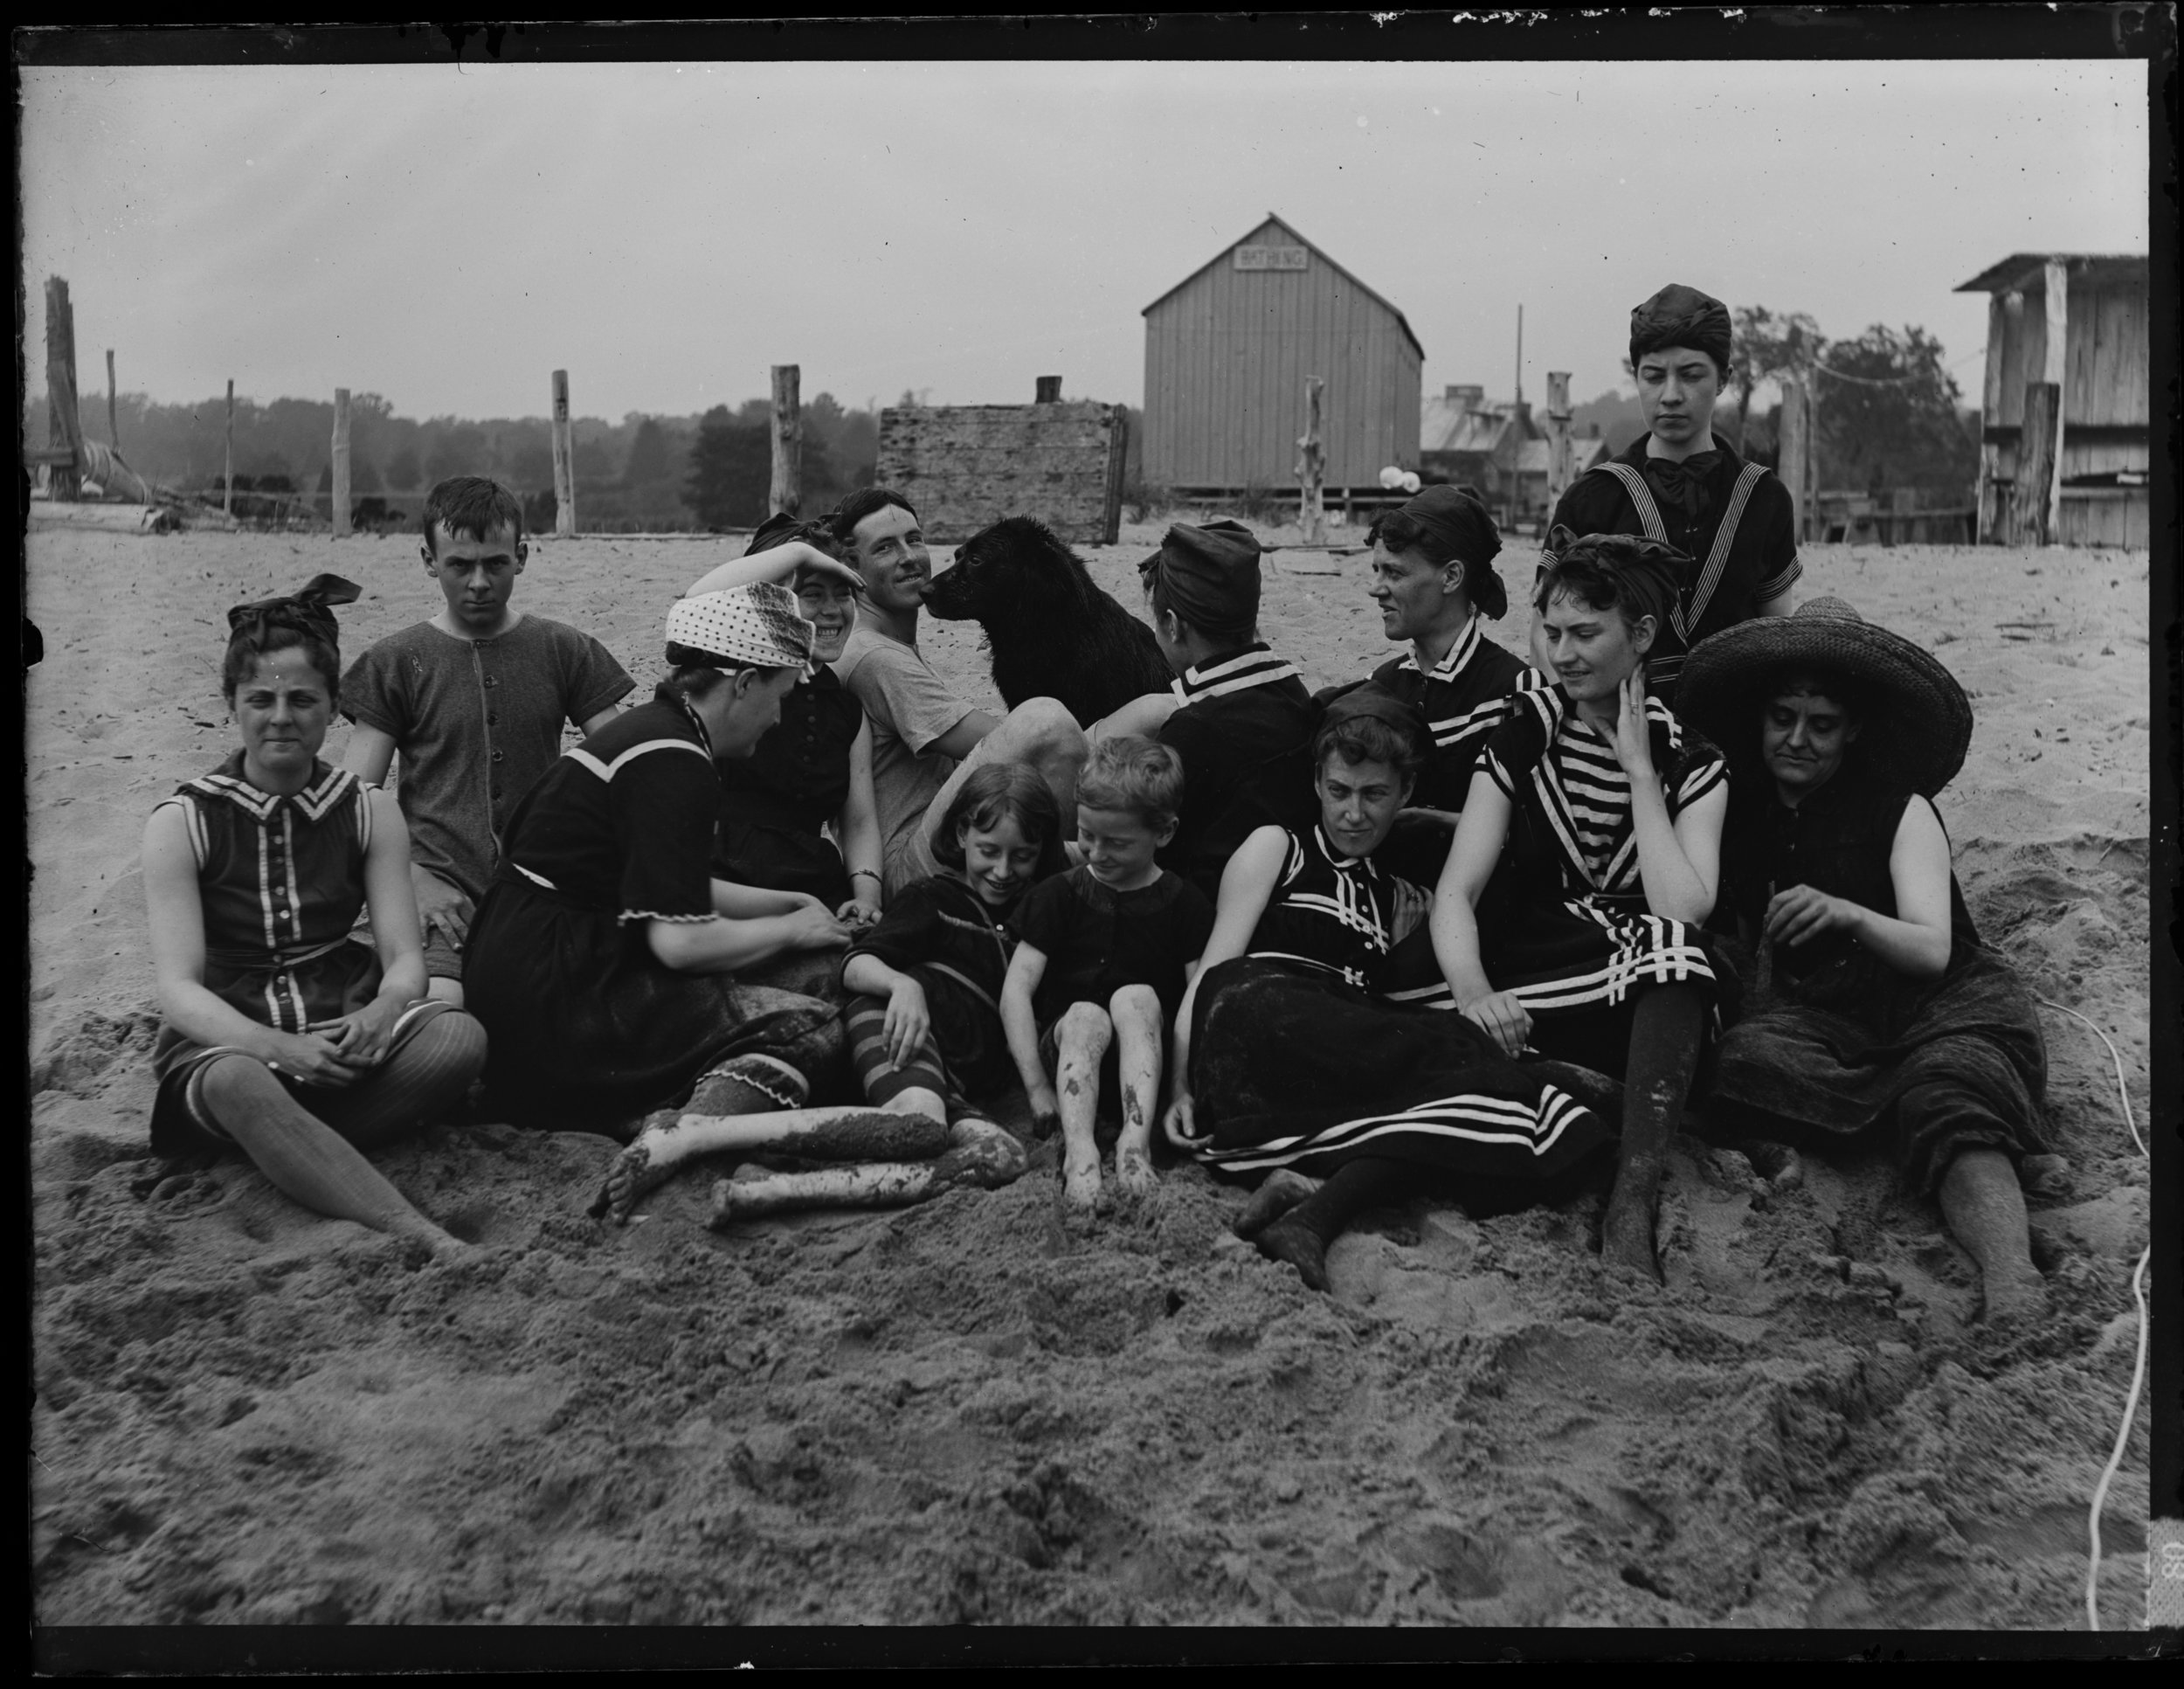 South Beach bathing party, Staten Island, September 15, 1886. Alice Austen is in the back row at right